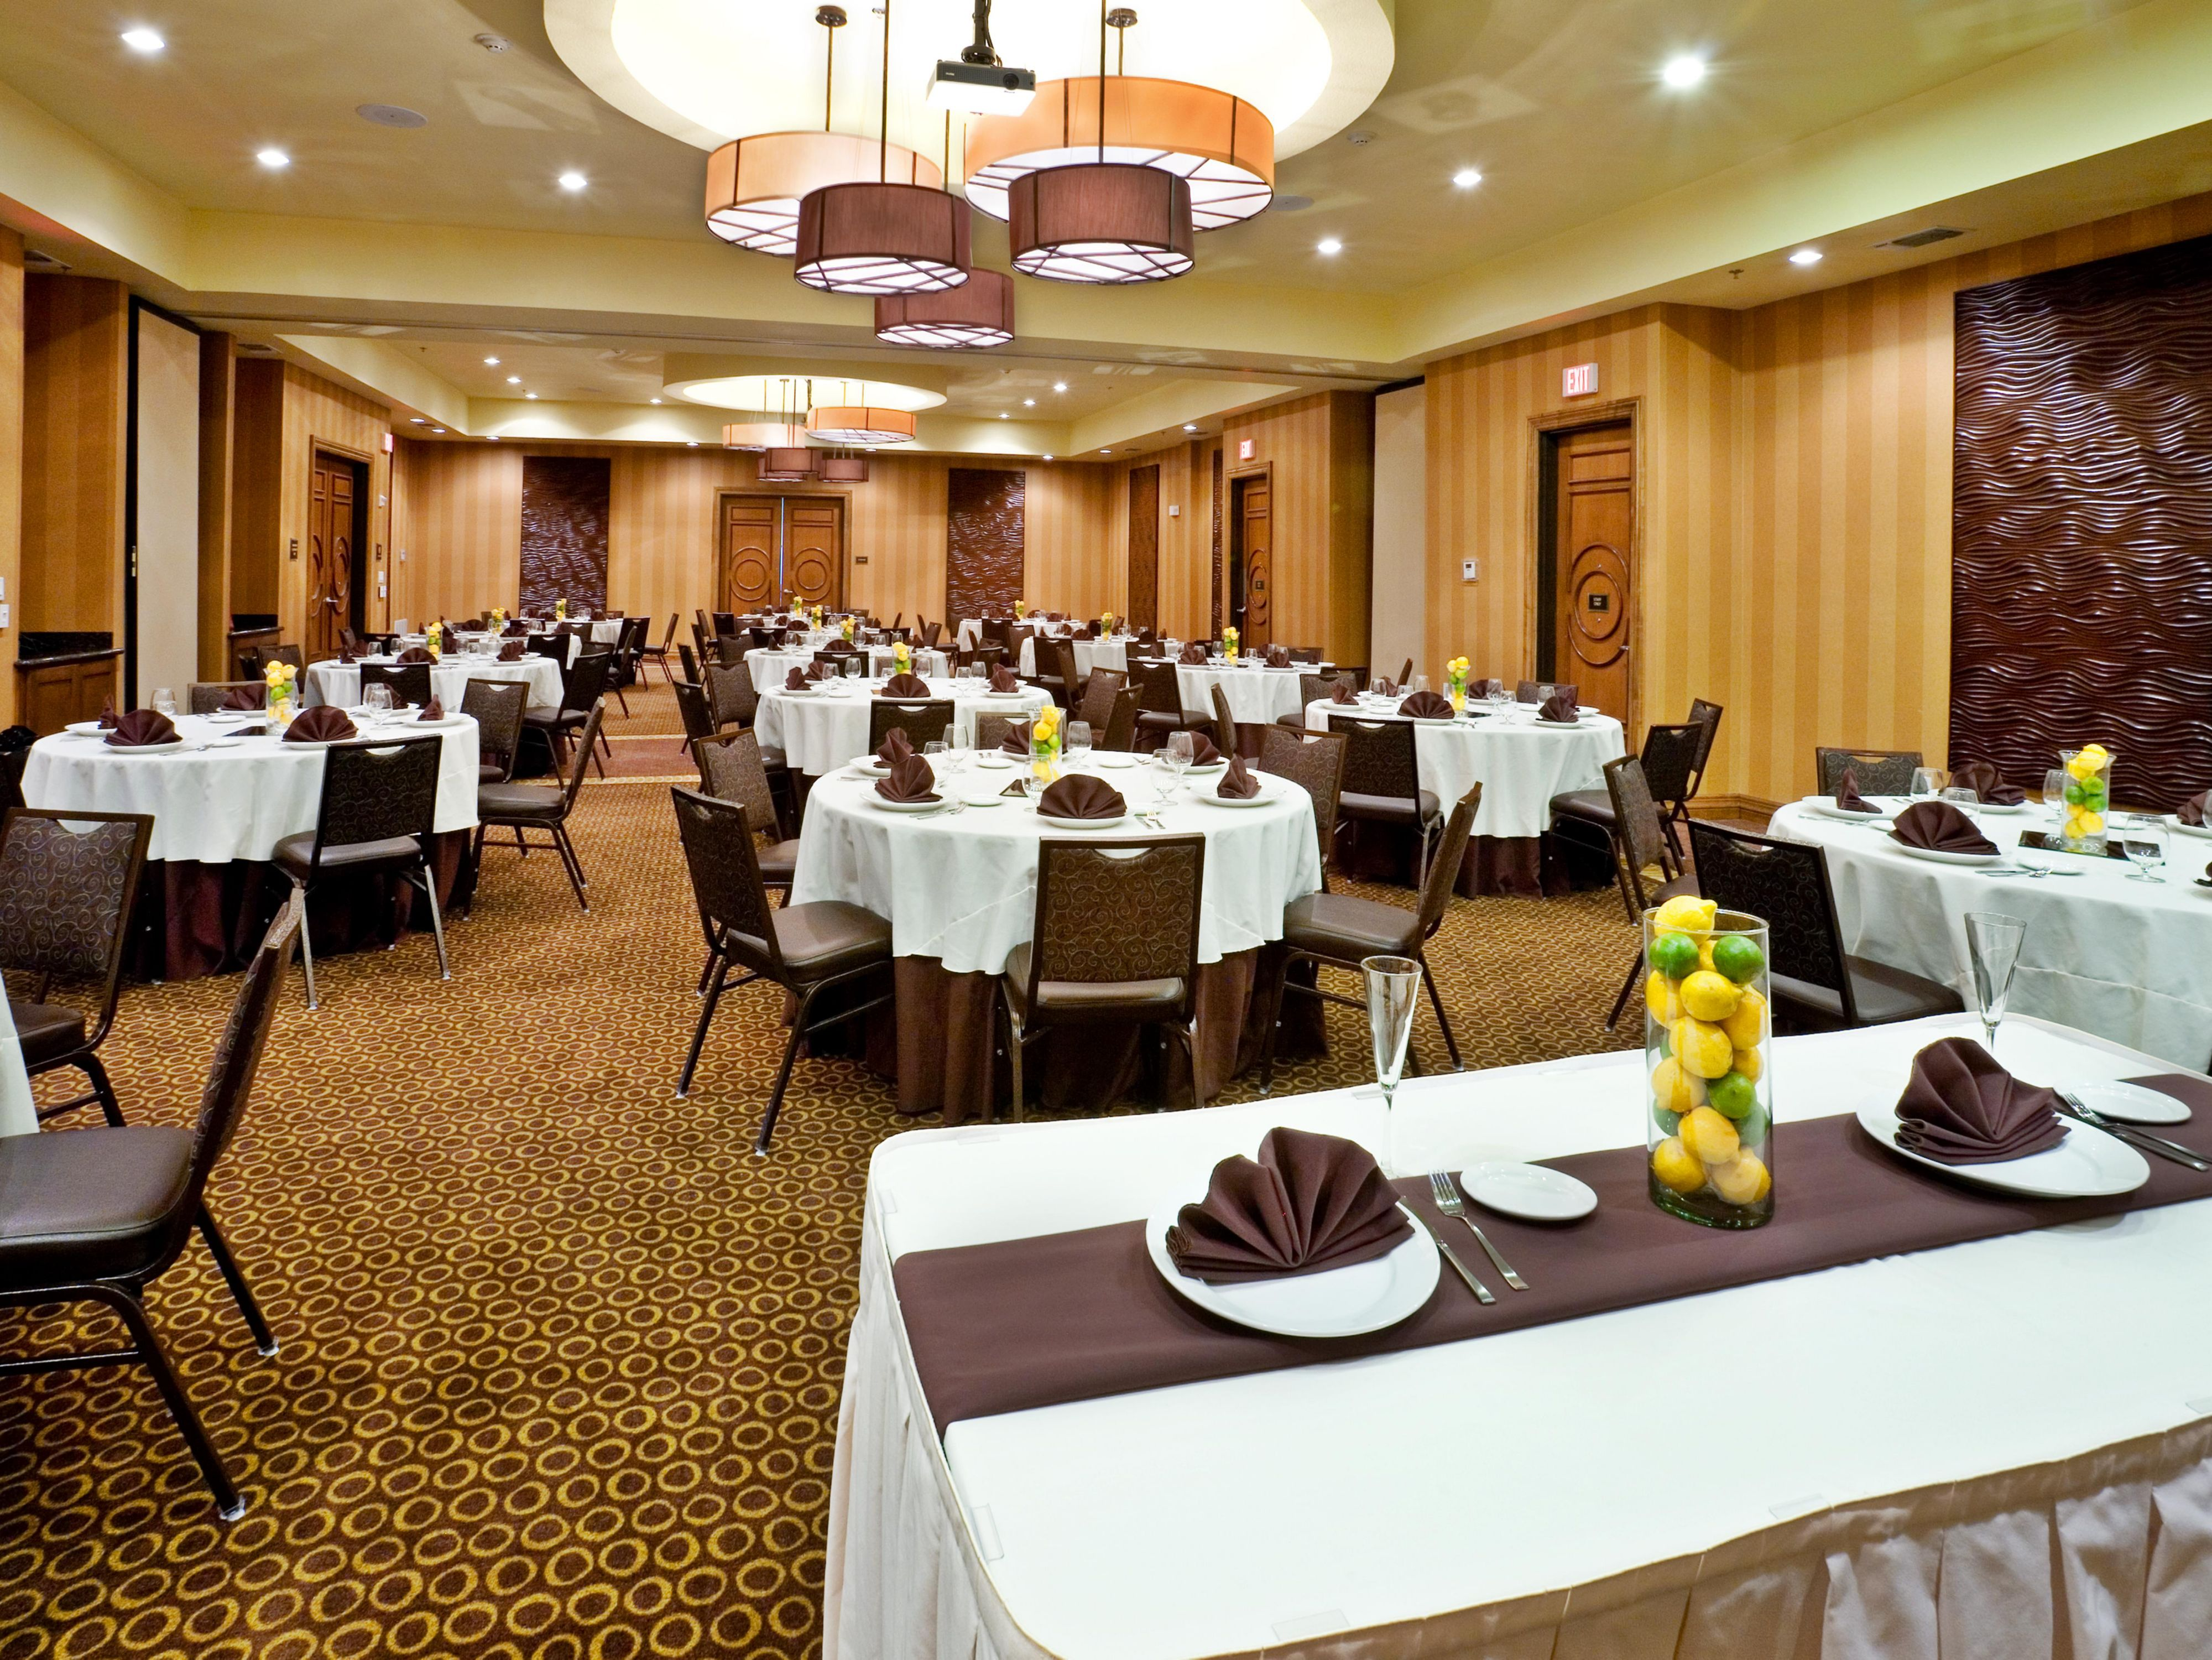 Up to 150 guests can enjoy the full banquet service.